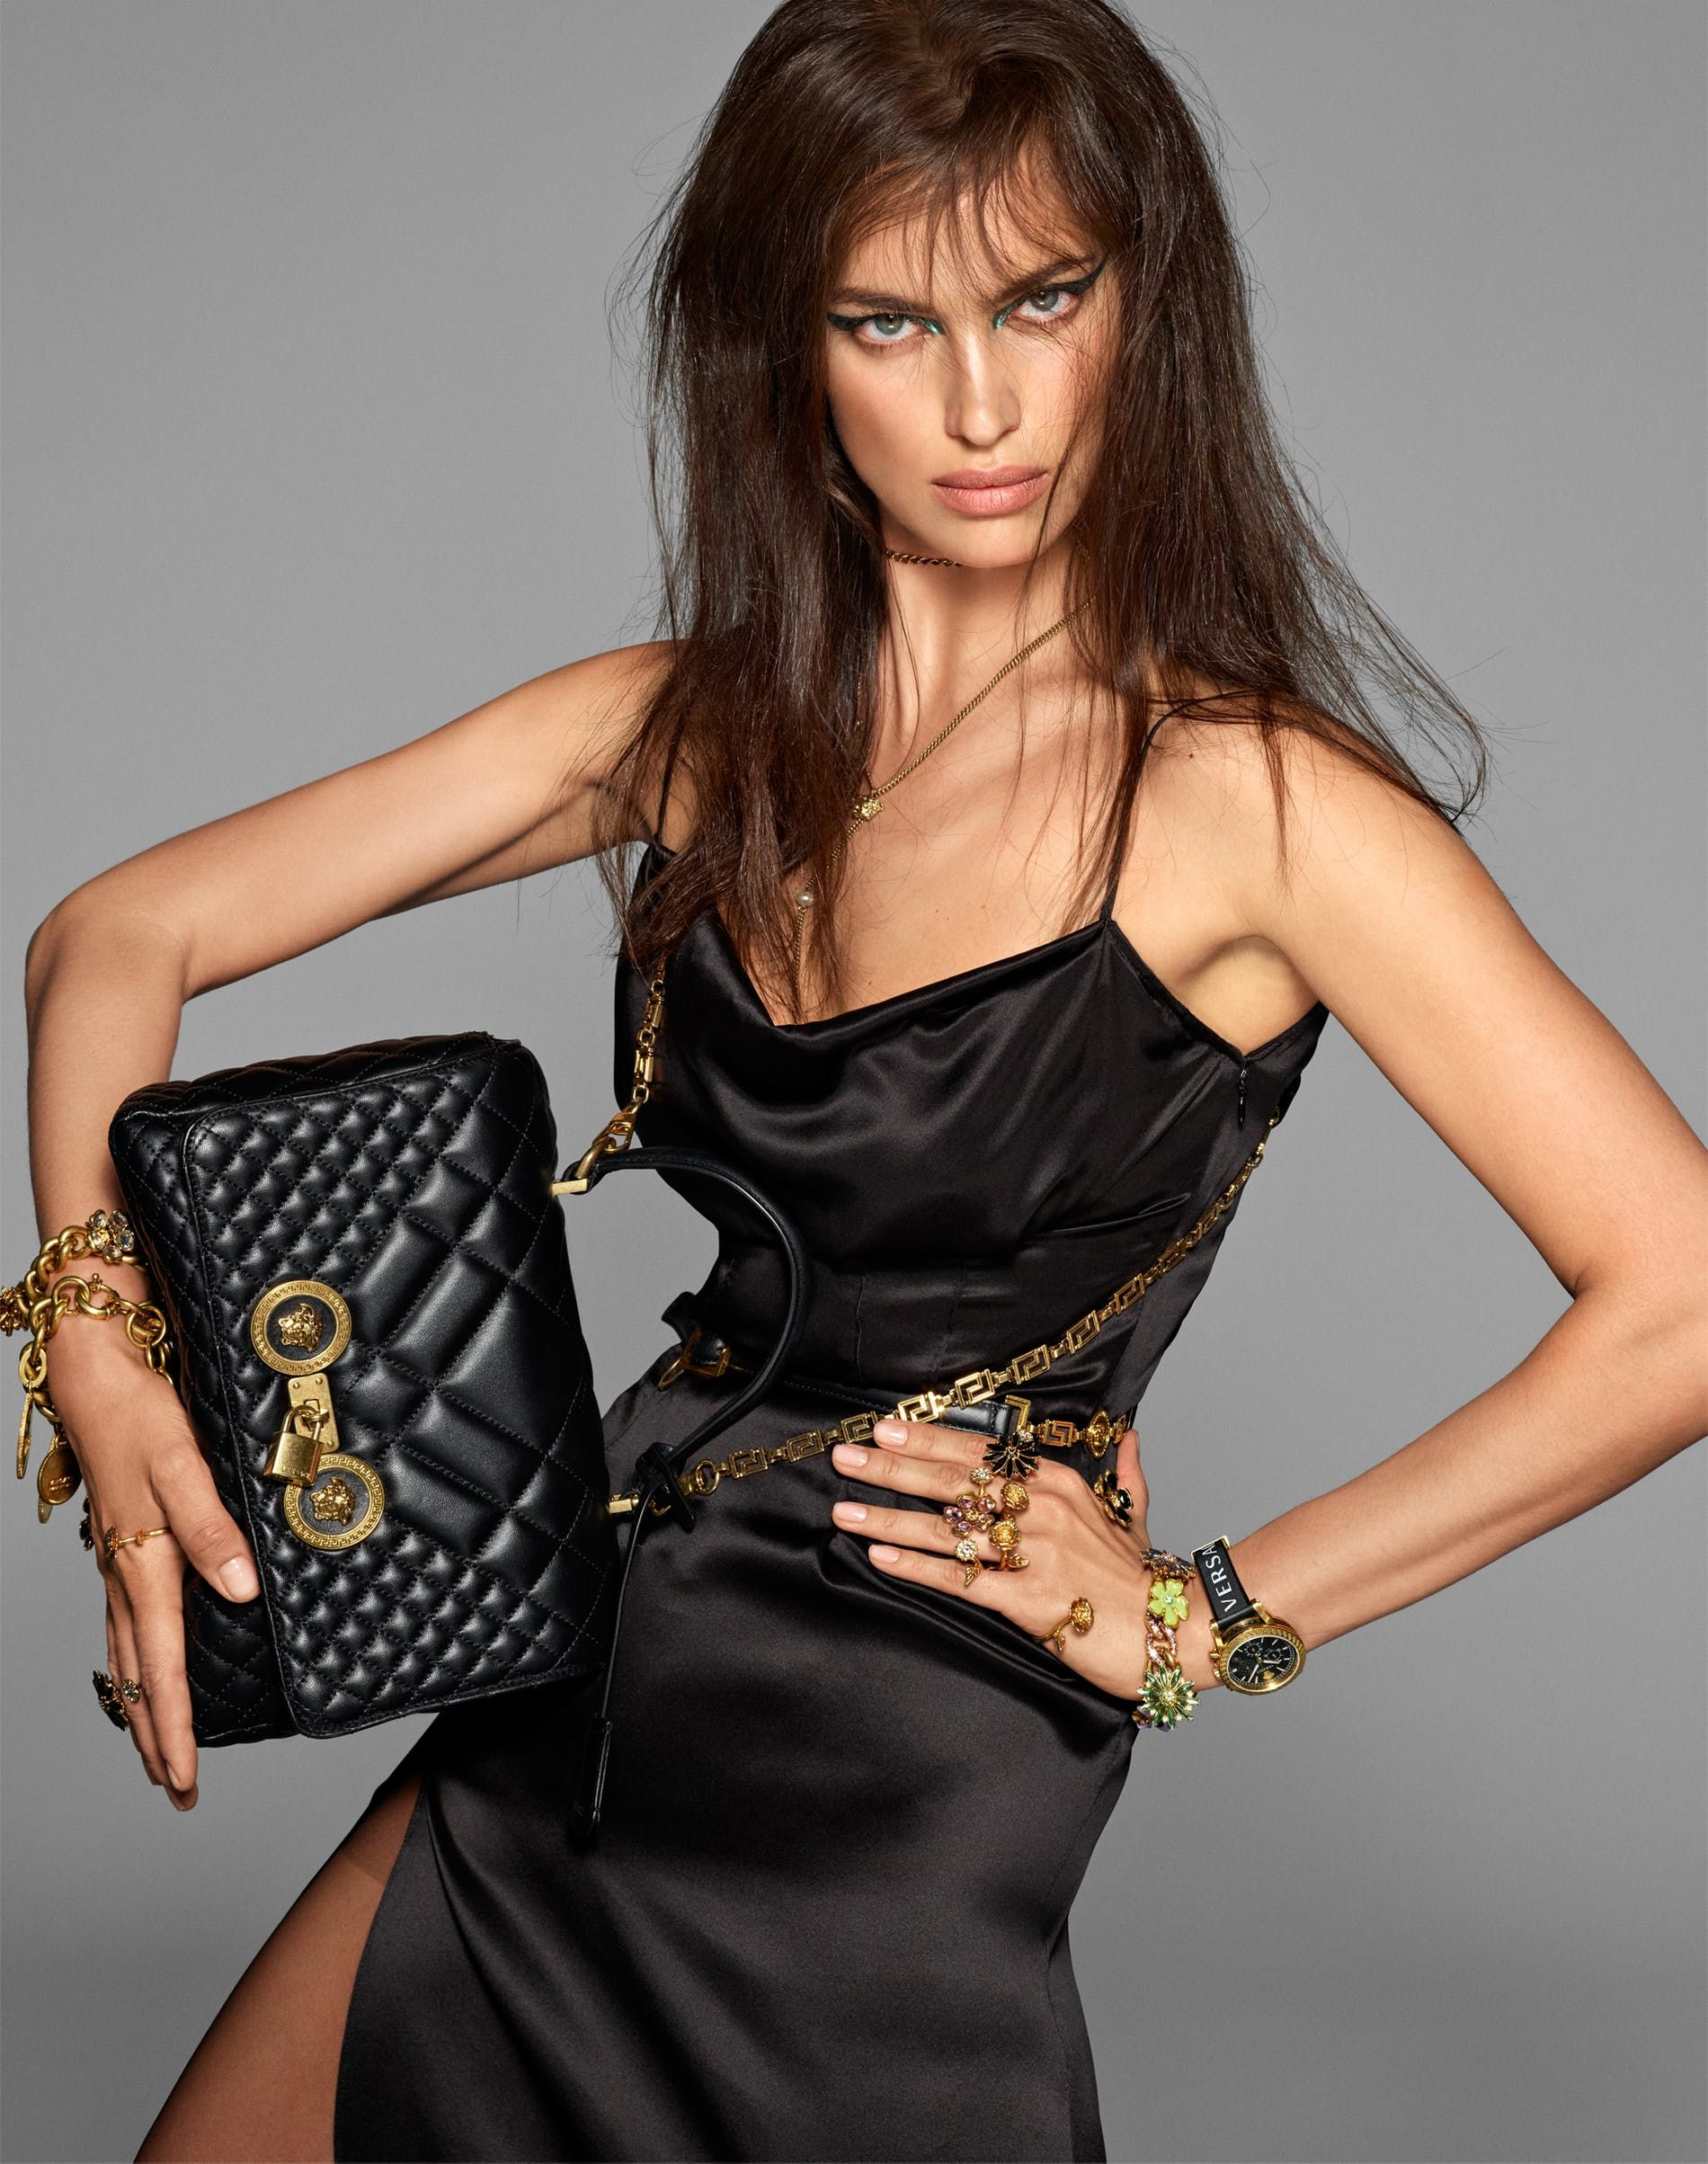 2cb174ba80 VERSACE Spring Summer 2019 Ready-To-Wear ad campaign featuring IRINA SHAYK  photographed by STEVEN MEISEL make-up PAT McGRATH hair GUIDO PALAU